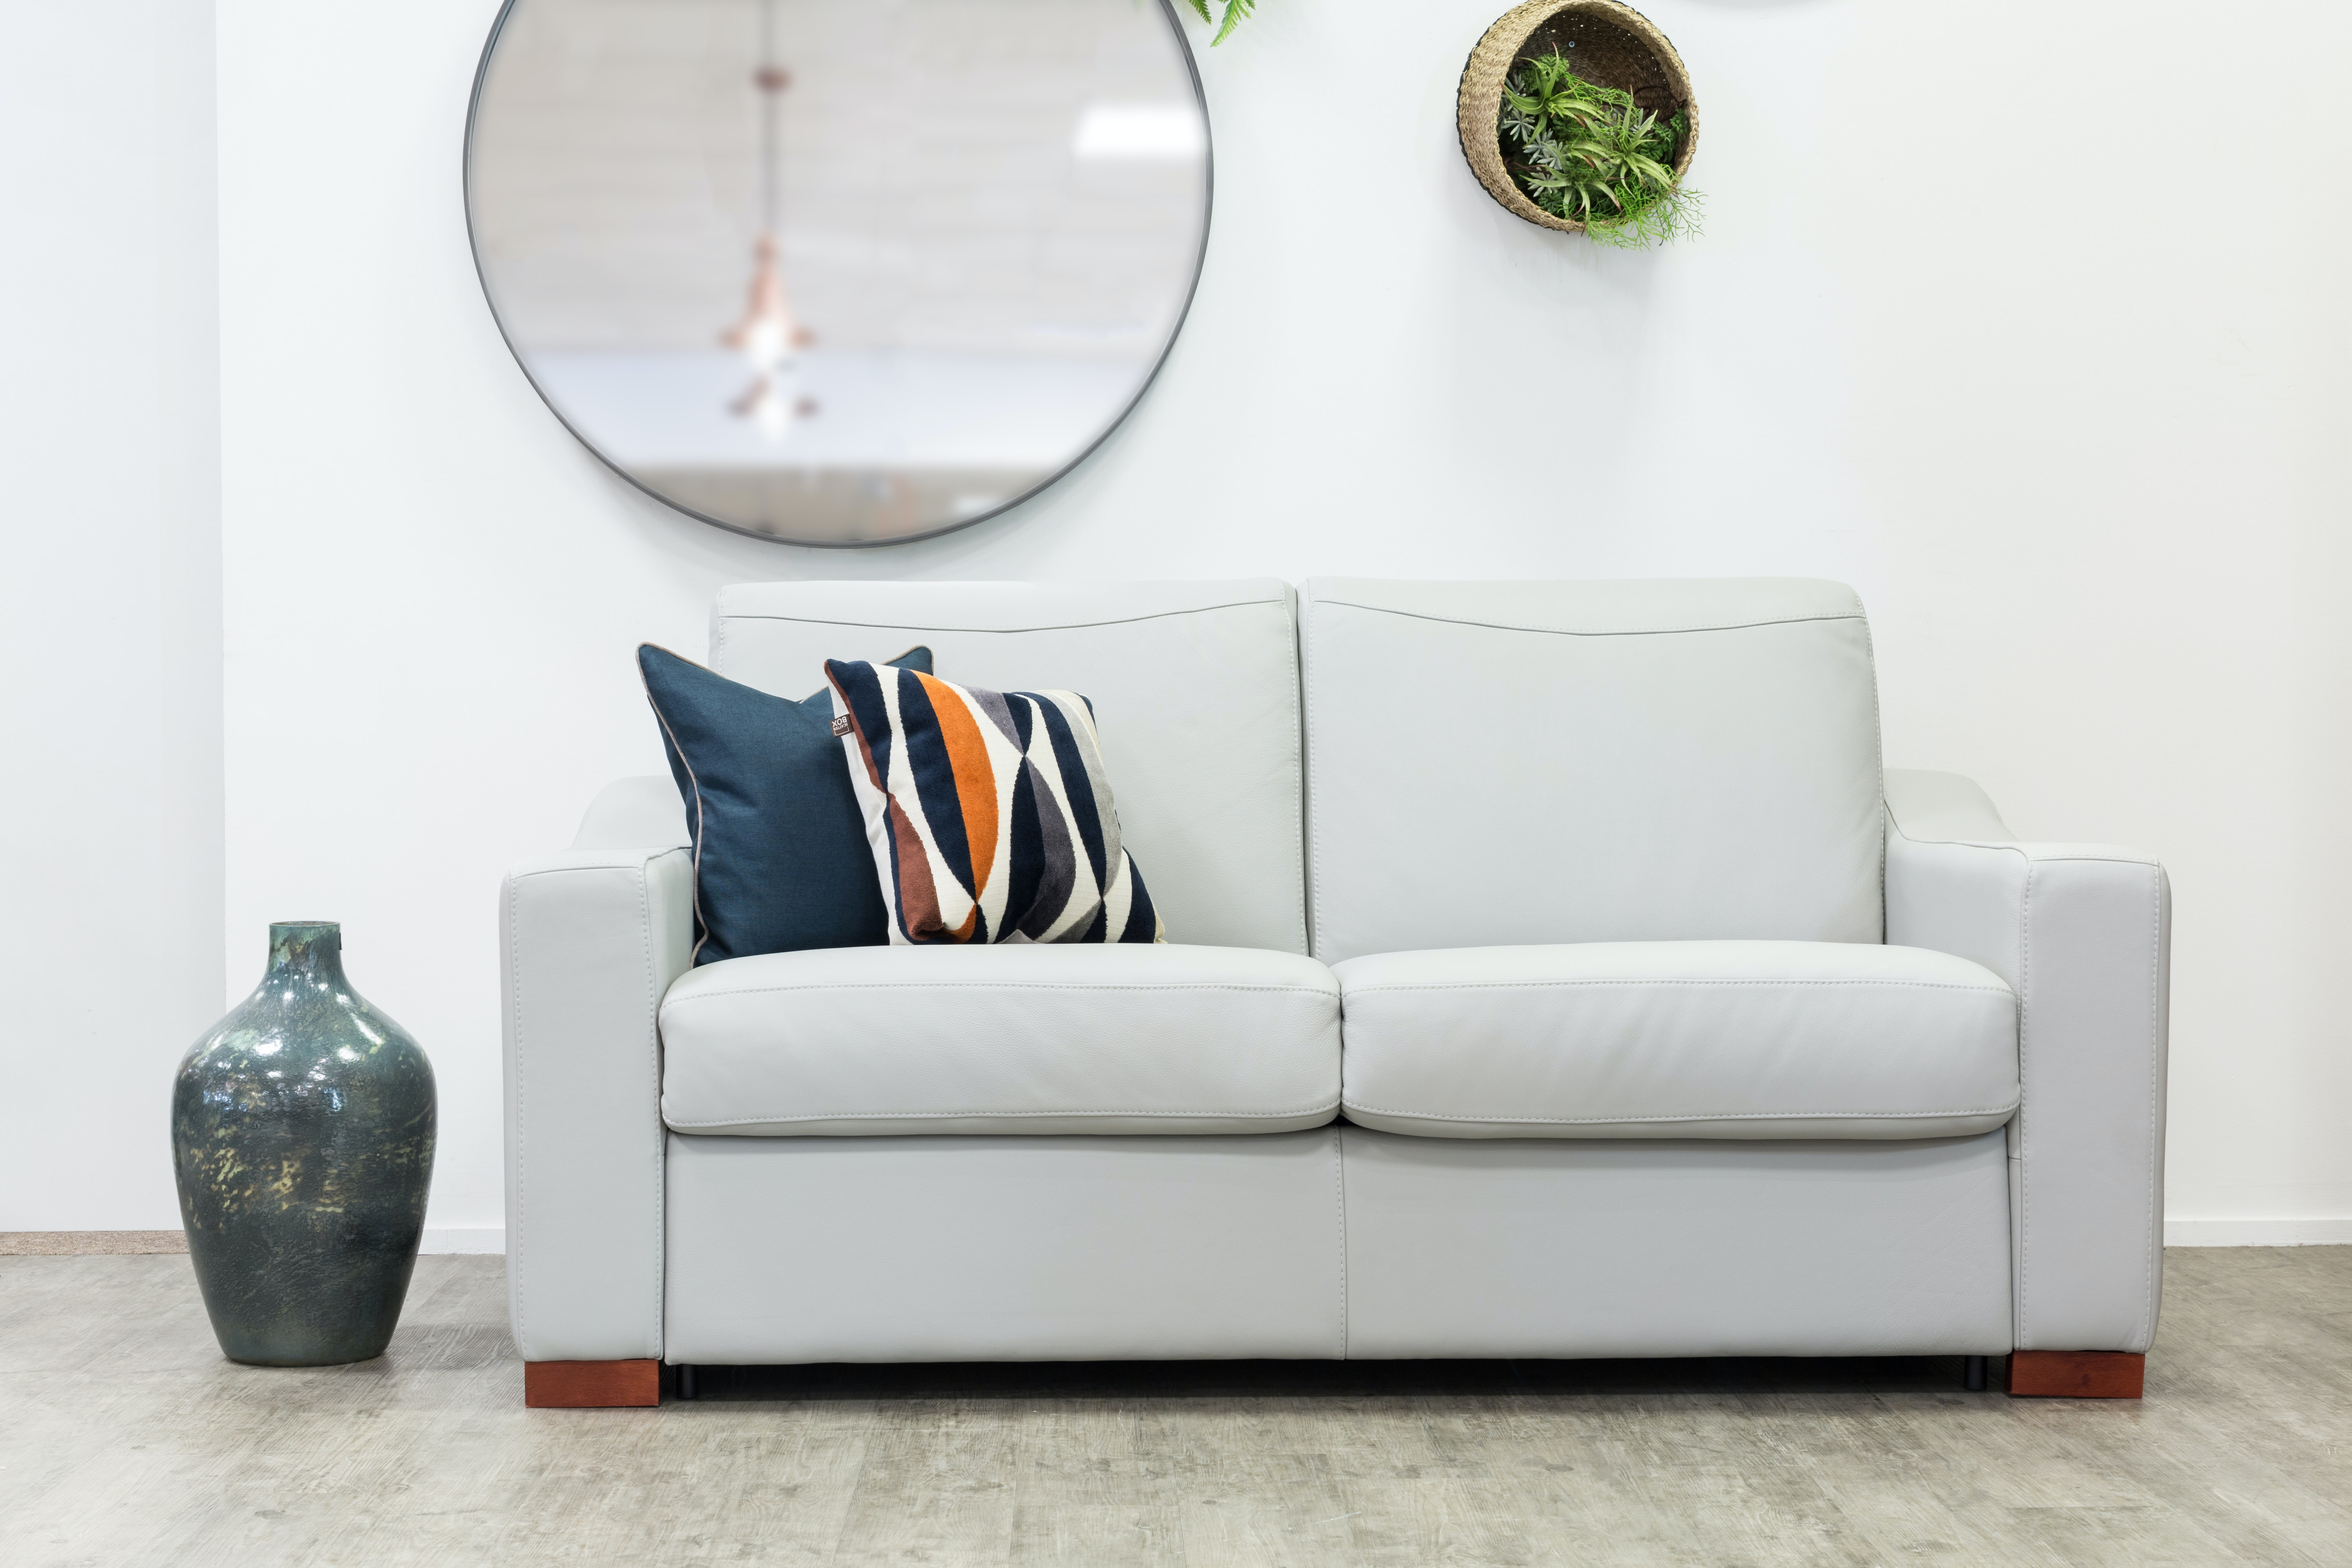 Smart Sofabed